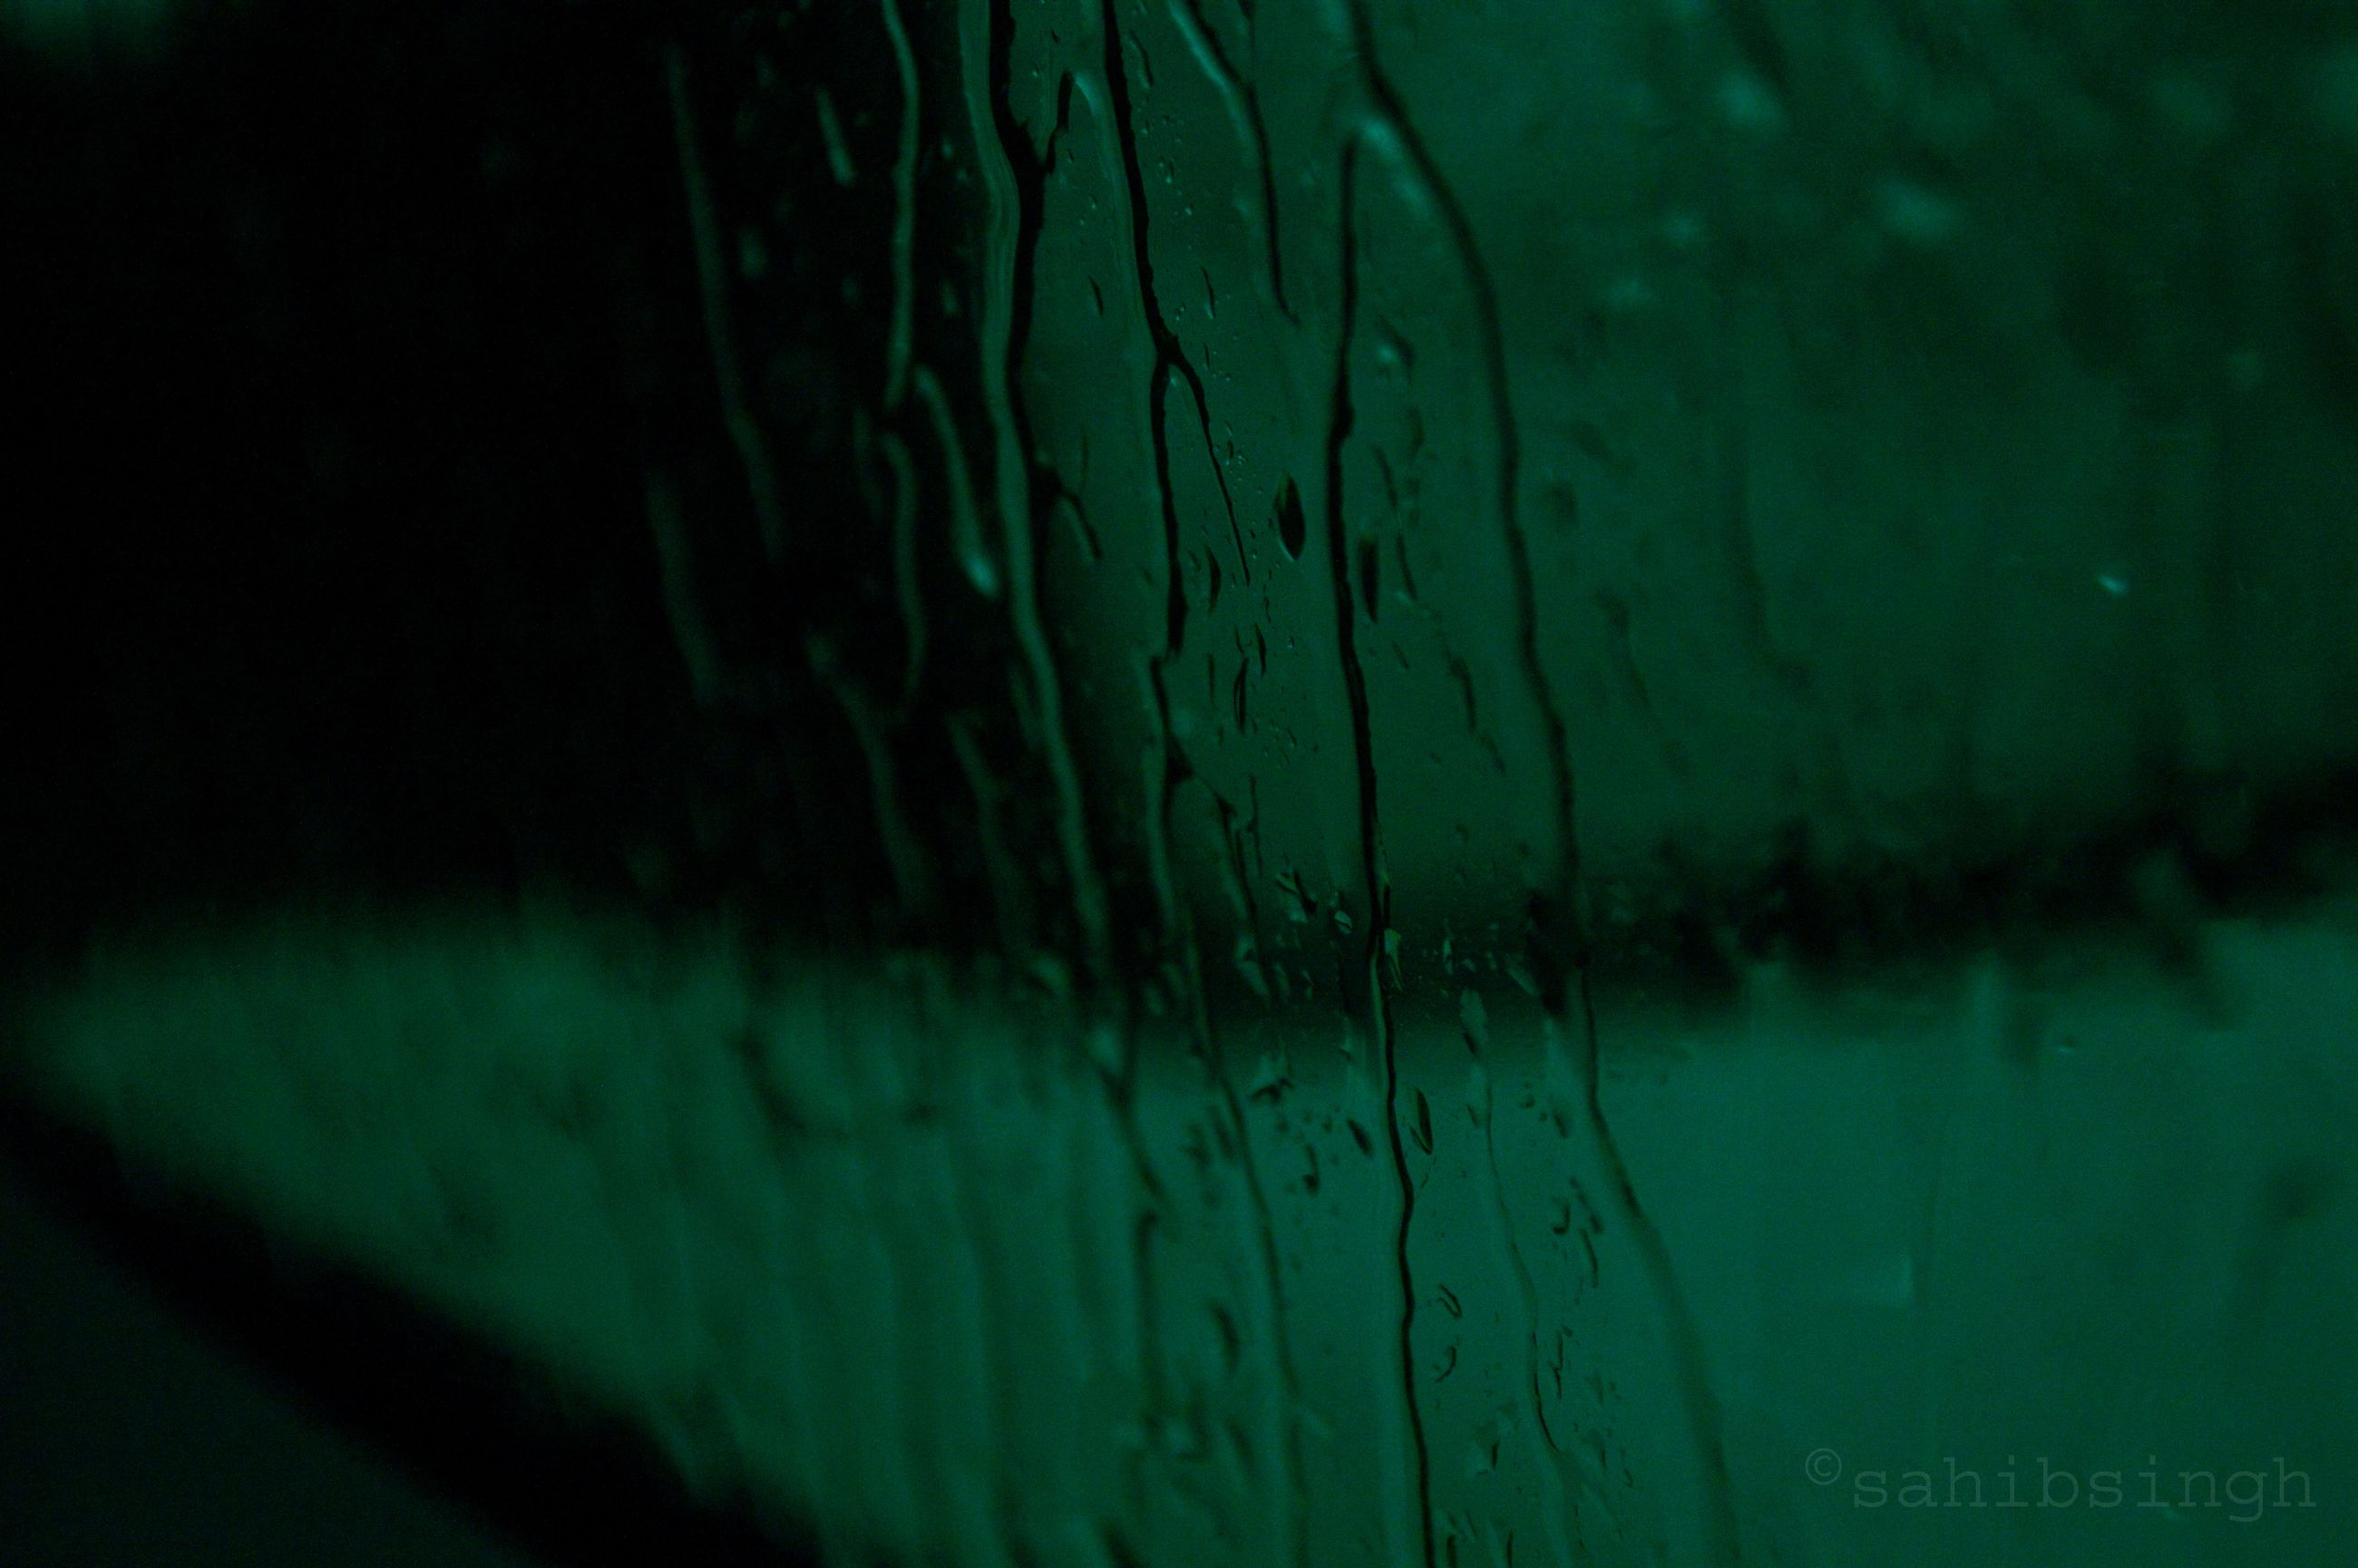 night, water, nature, close-up, tranquility, dark, no people, beauty in nature, outdoors, tree, reflection, textured, auto post production filter, backgrounds, wall - building feature, growth, abstract, motion, waterfront